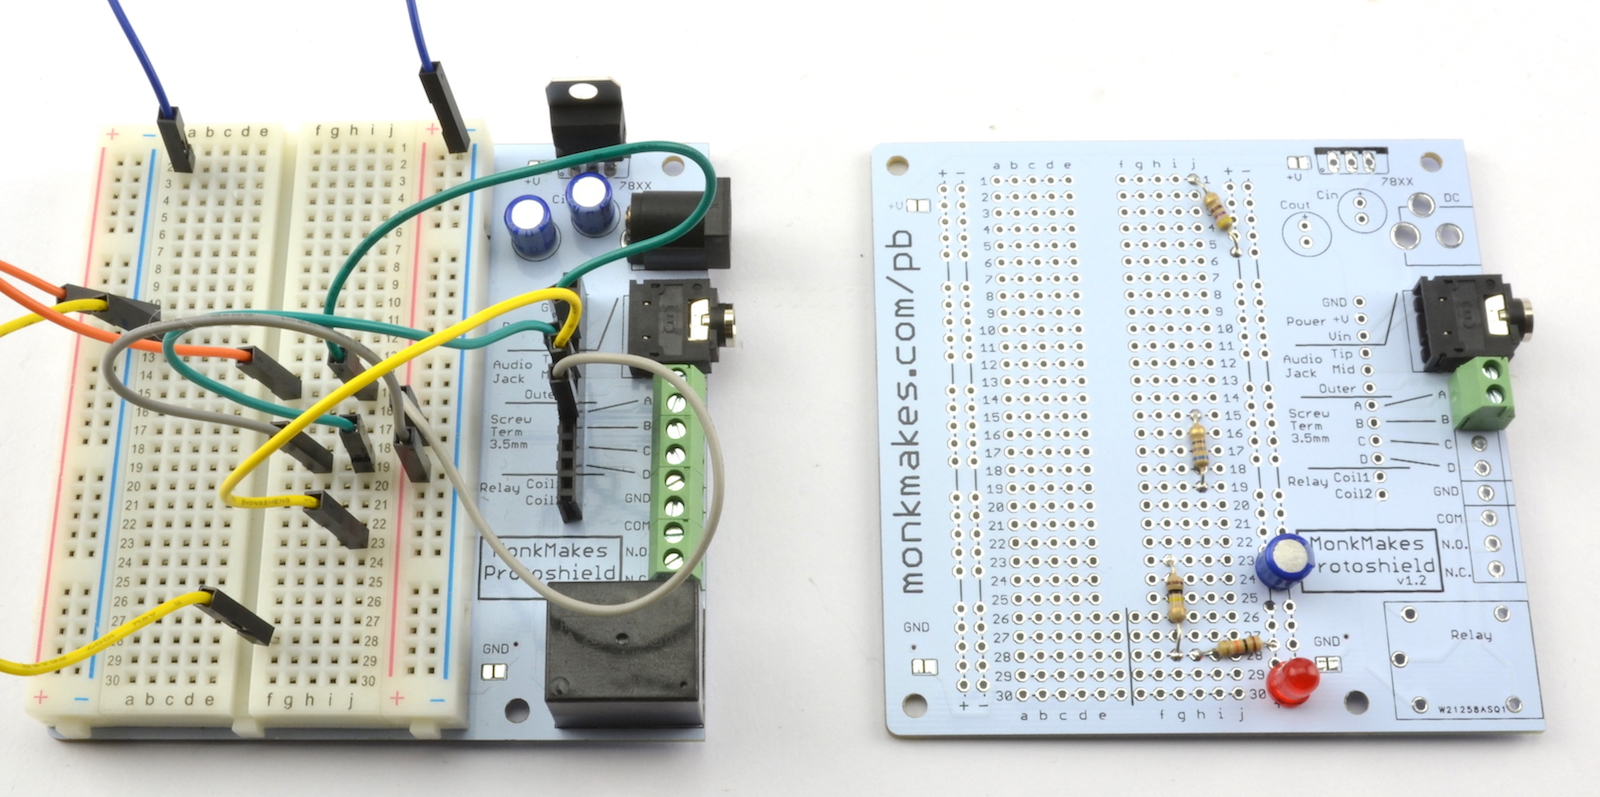 Monkmakes Protoboard Kit Monk Makes Wiring A Working Breadboard From Circuit Diagram Is Easy If You This Board Ideal For Use With Any Project That Could Start 400 Point Solderless So Means Pretty Much